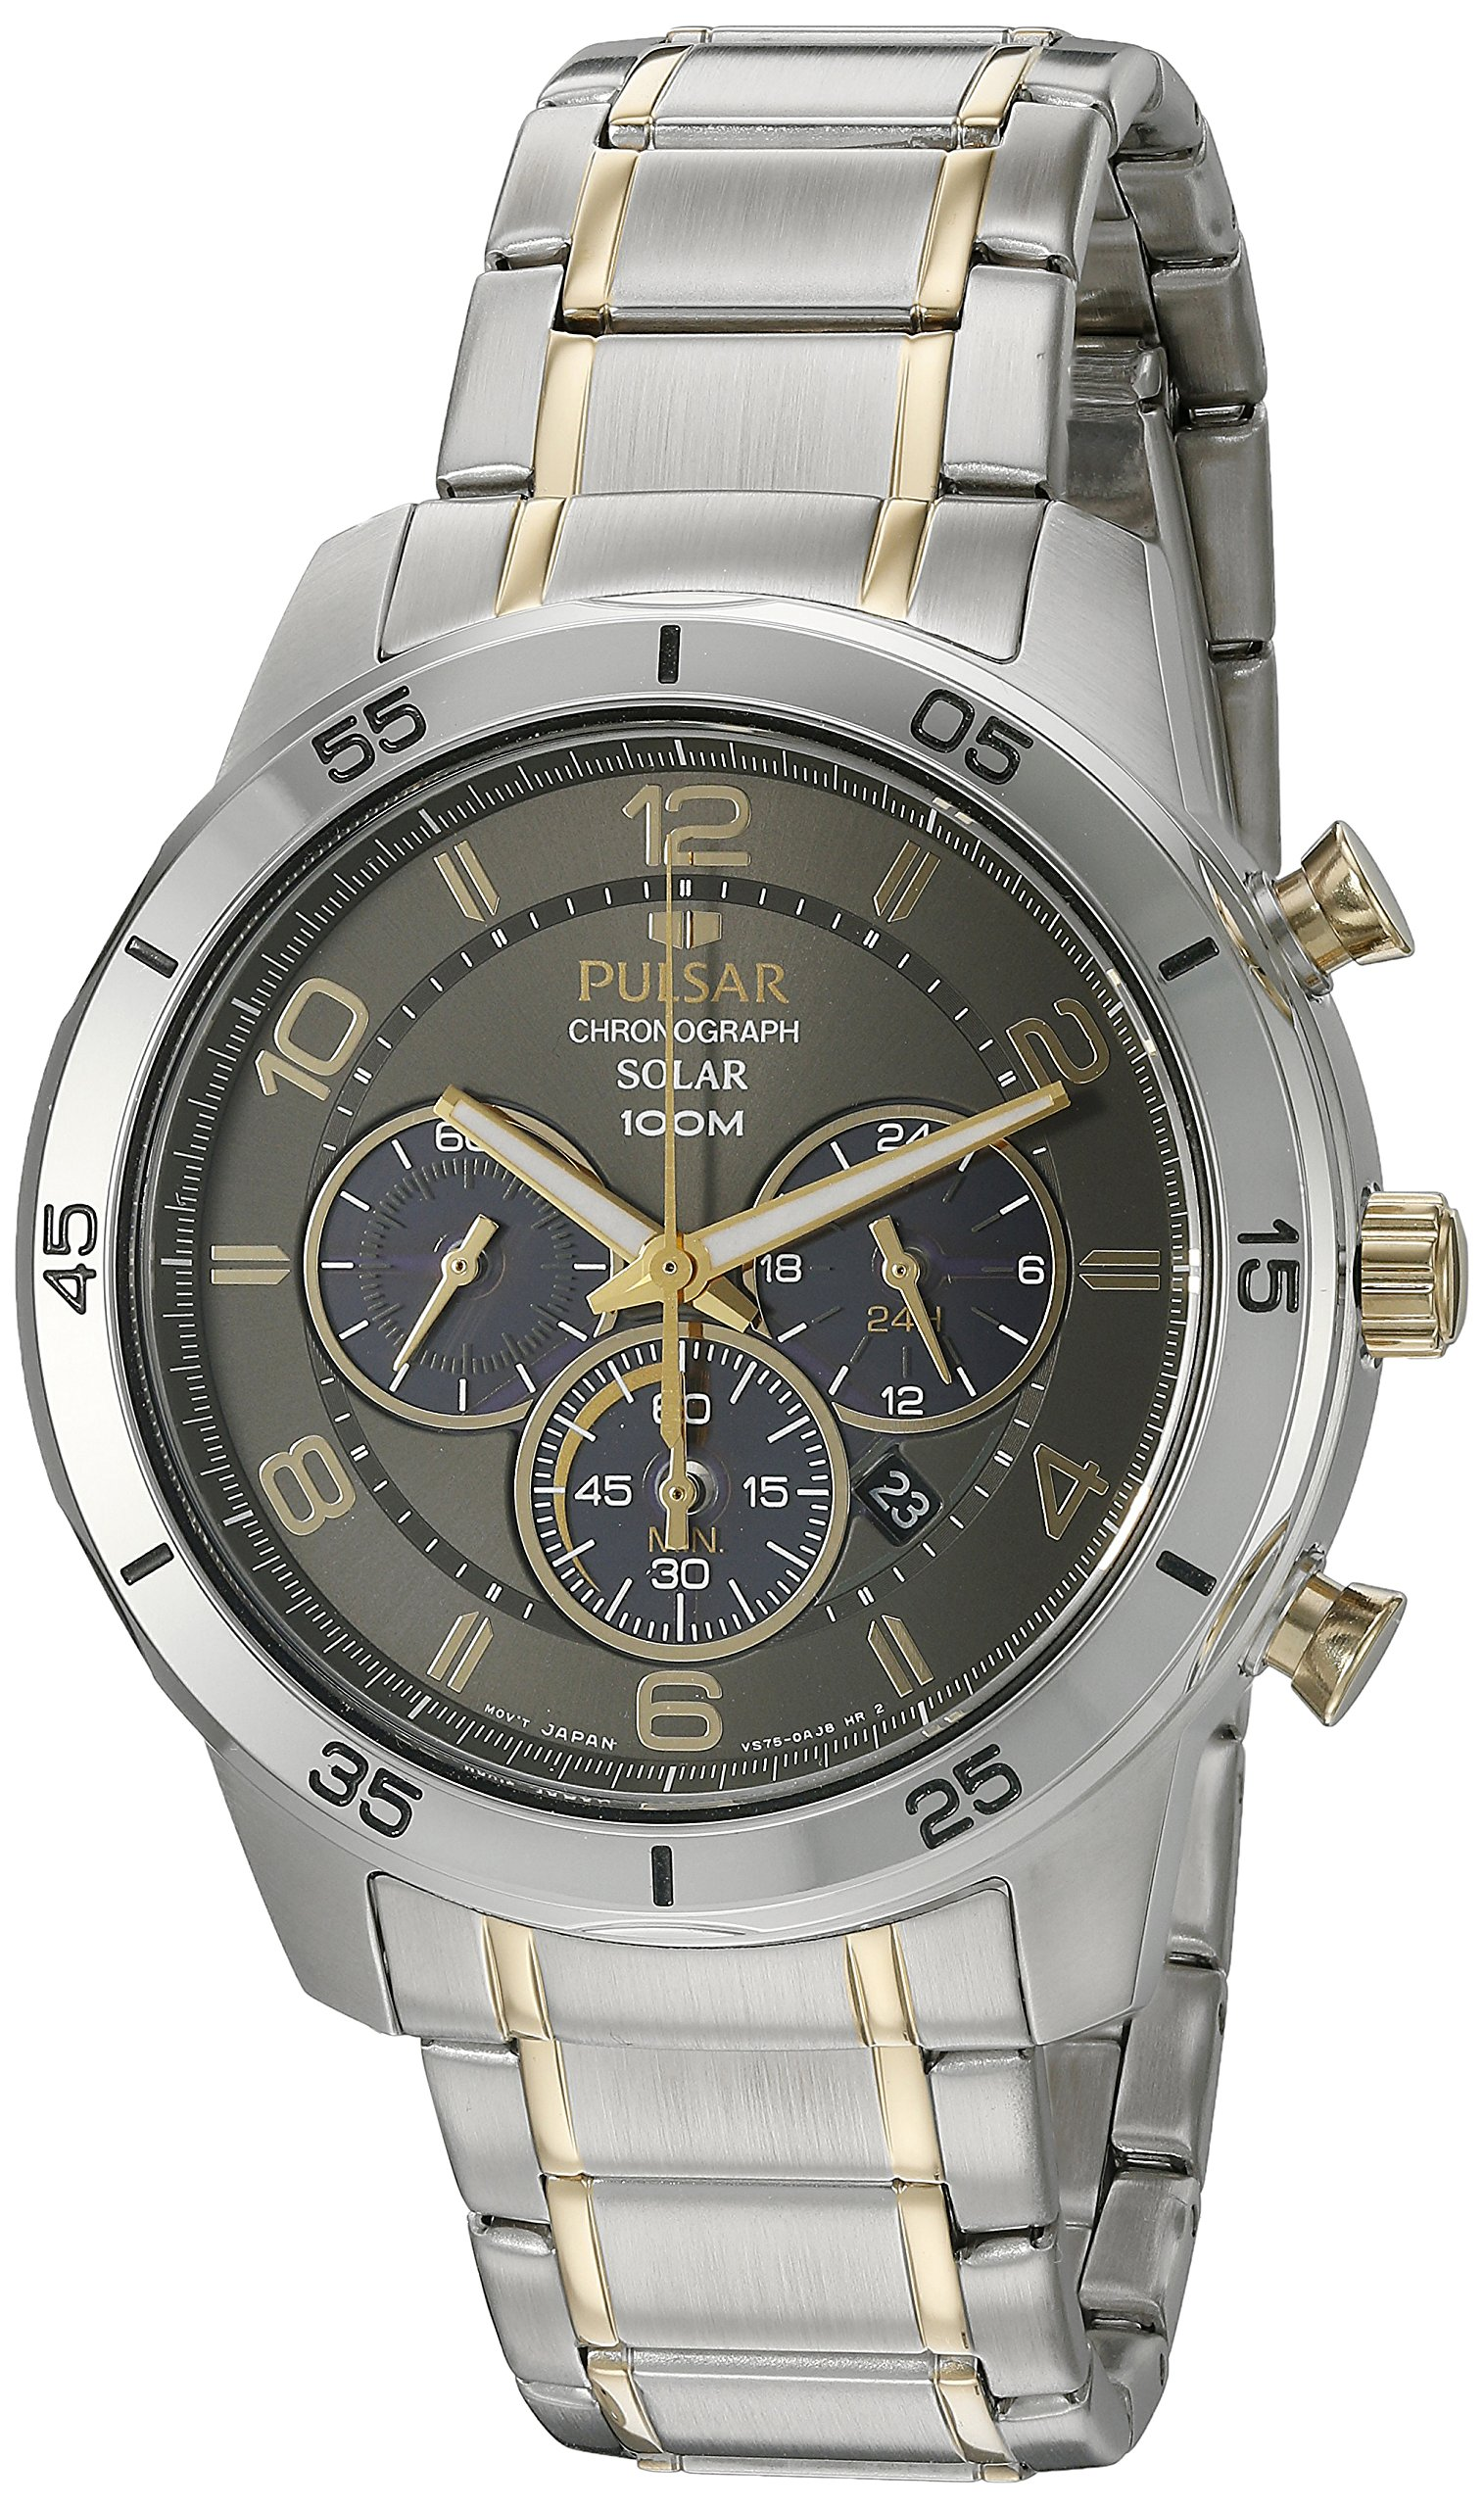 Pulsar Men's 'Chronograph Solar' Quartz Stainless Steel Dress Watch (Model: PX5057) by Pulsar